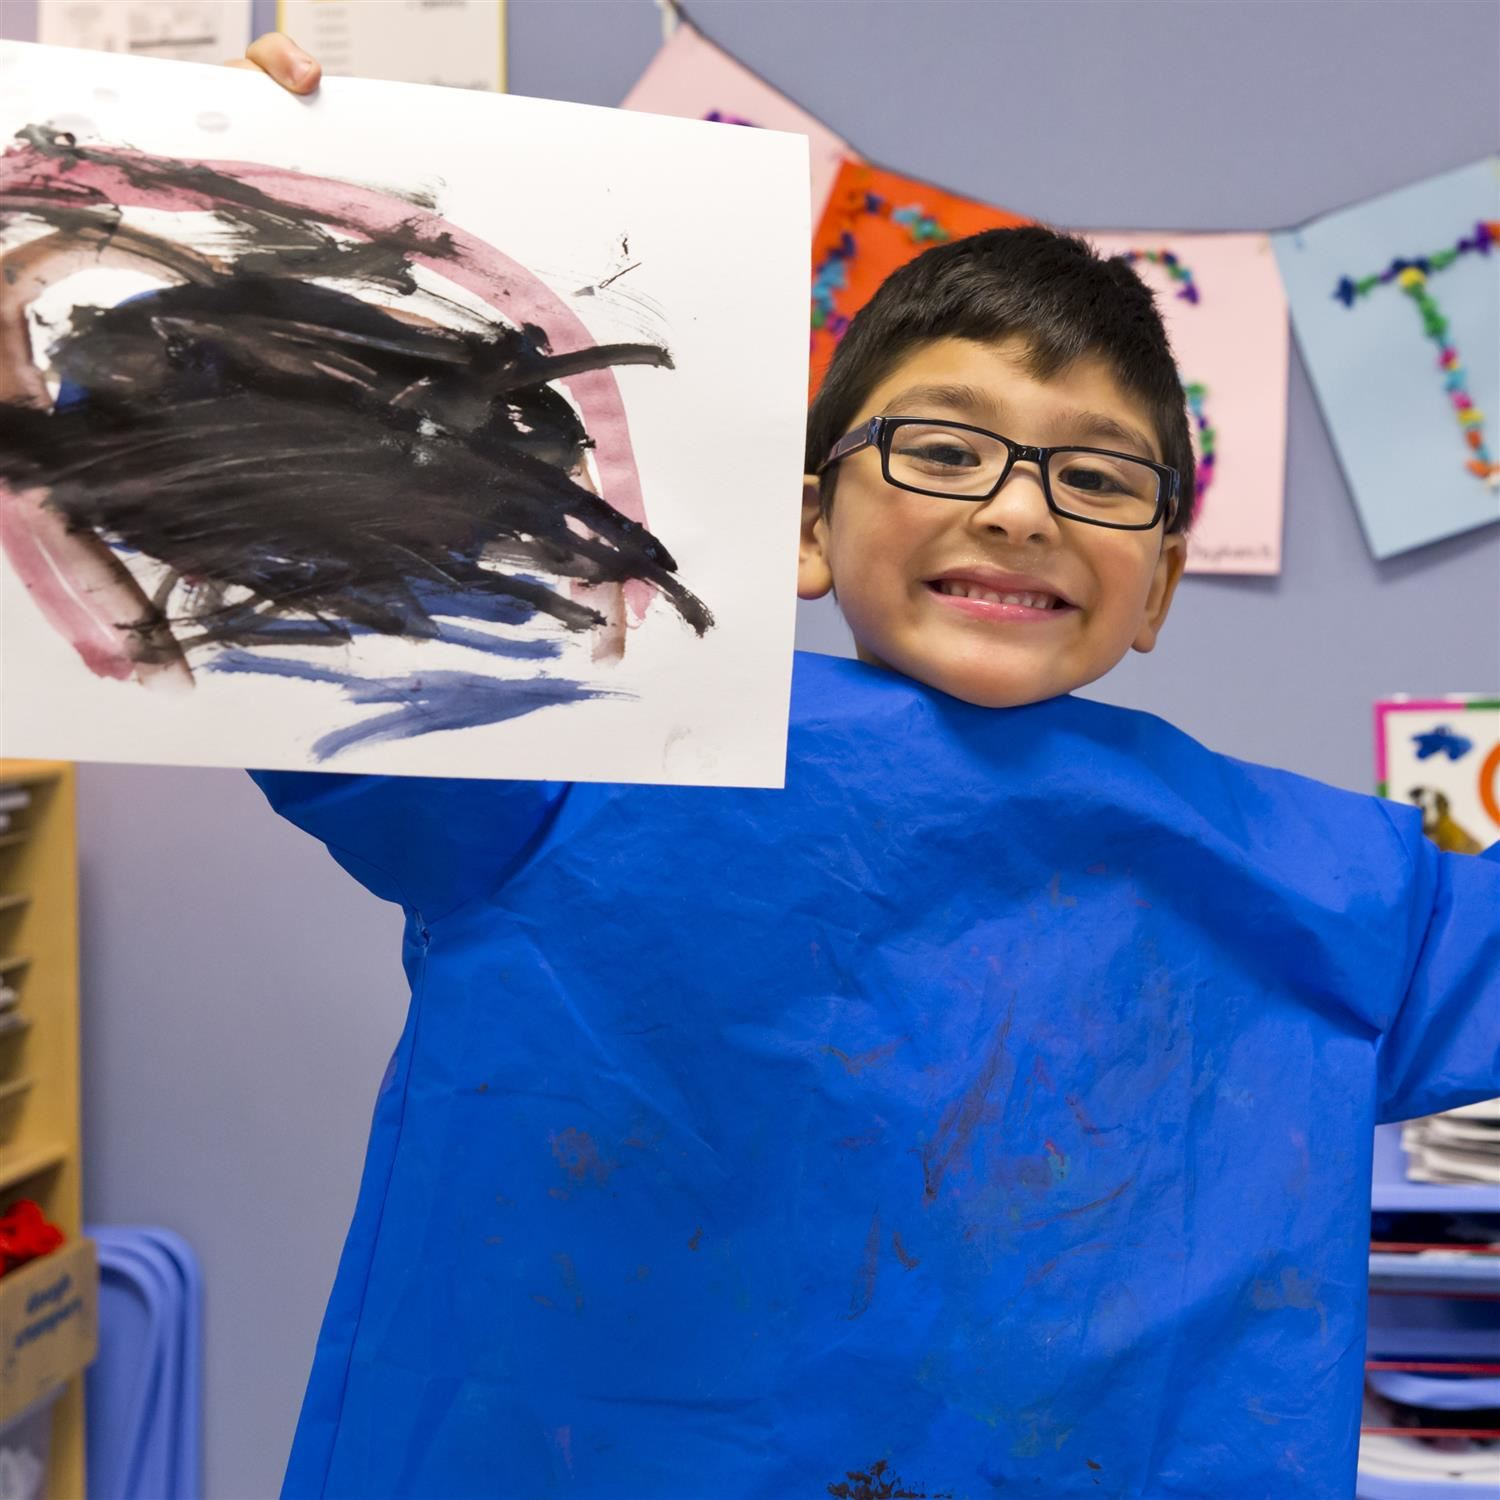 pre-k student proudly showing his art work